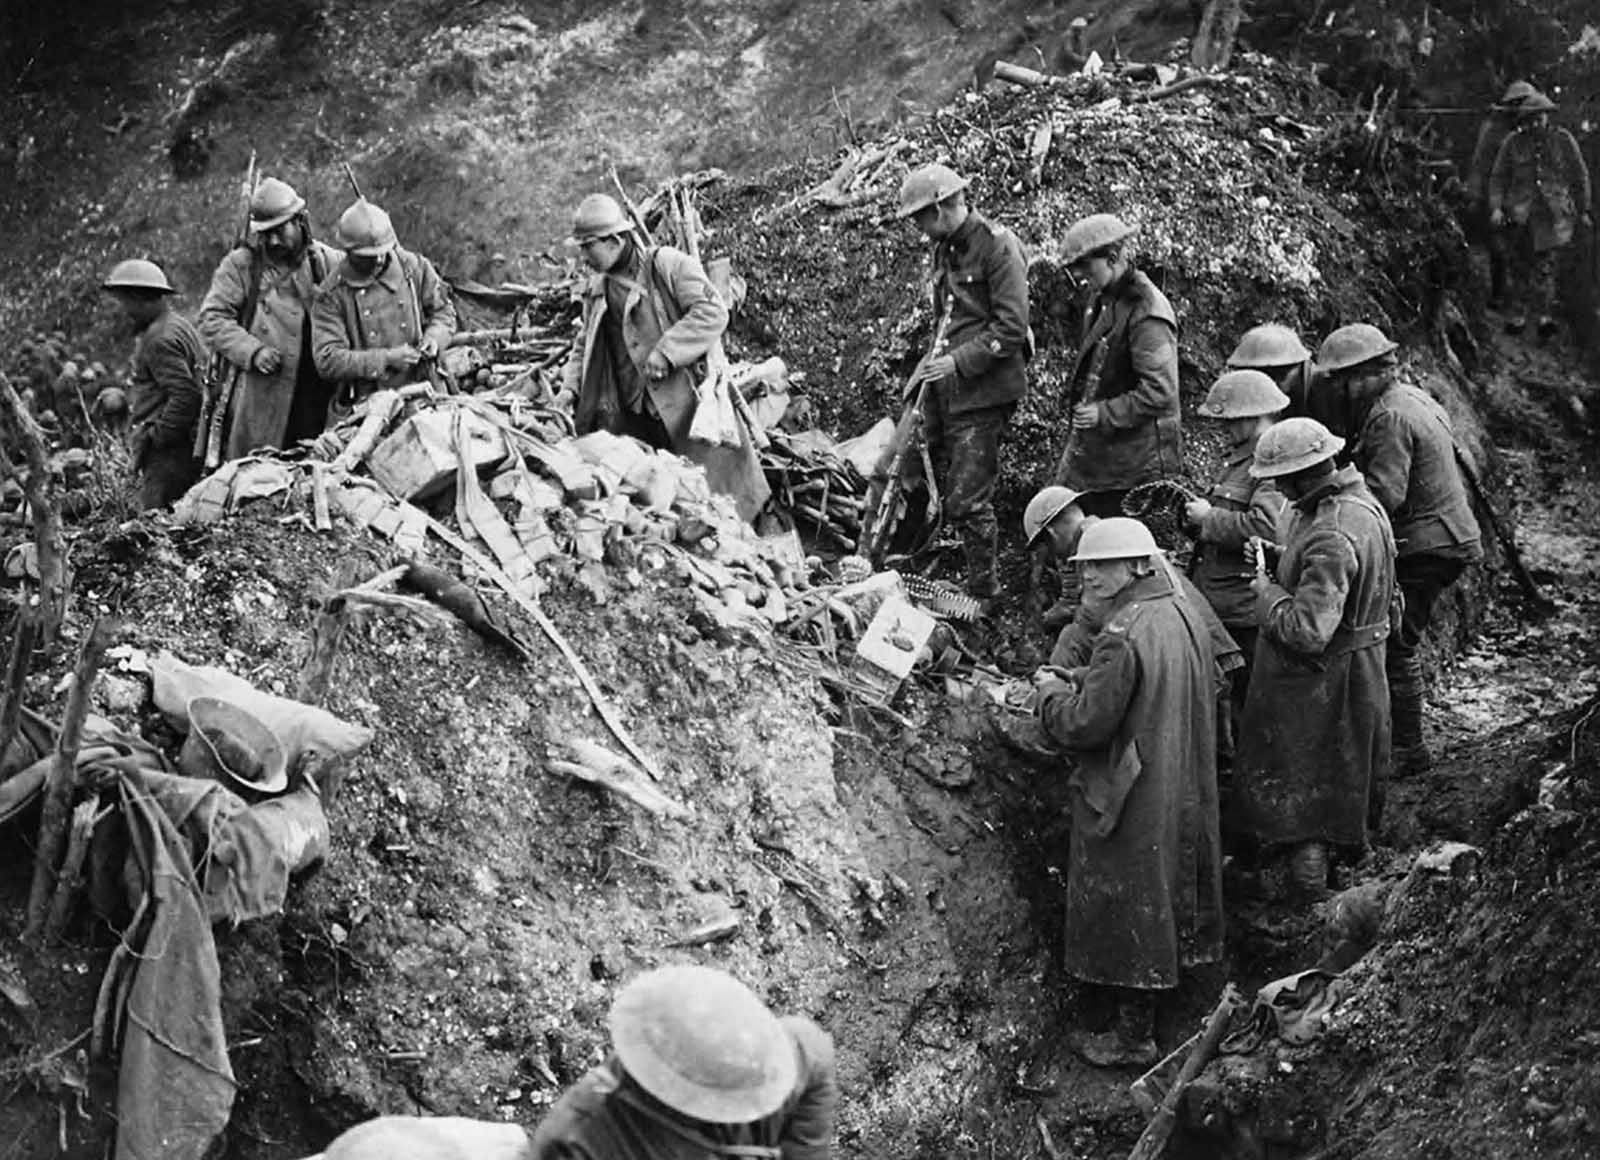 Cleaning up German trenches at St. Pierre Divion. In the foreground a group of British soldiers are sorting through equipment abandoned in the trenches by the Germans when St Pierre Divion was captured. One soldier has three rifles slung on his shoulder, another has two. Others are looking at machine gun ammunition. The probable photographer, John Warwick Brooke, has achieved considerable depth of field as many other soldiers can be seen in the background far along the trenches.